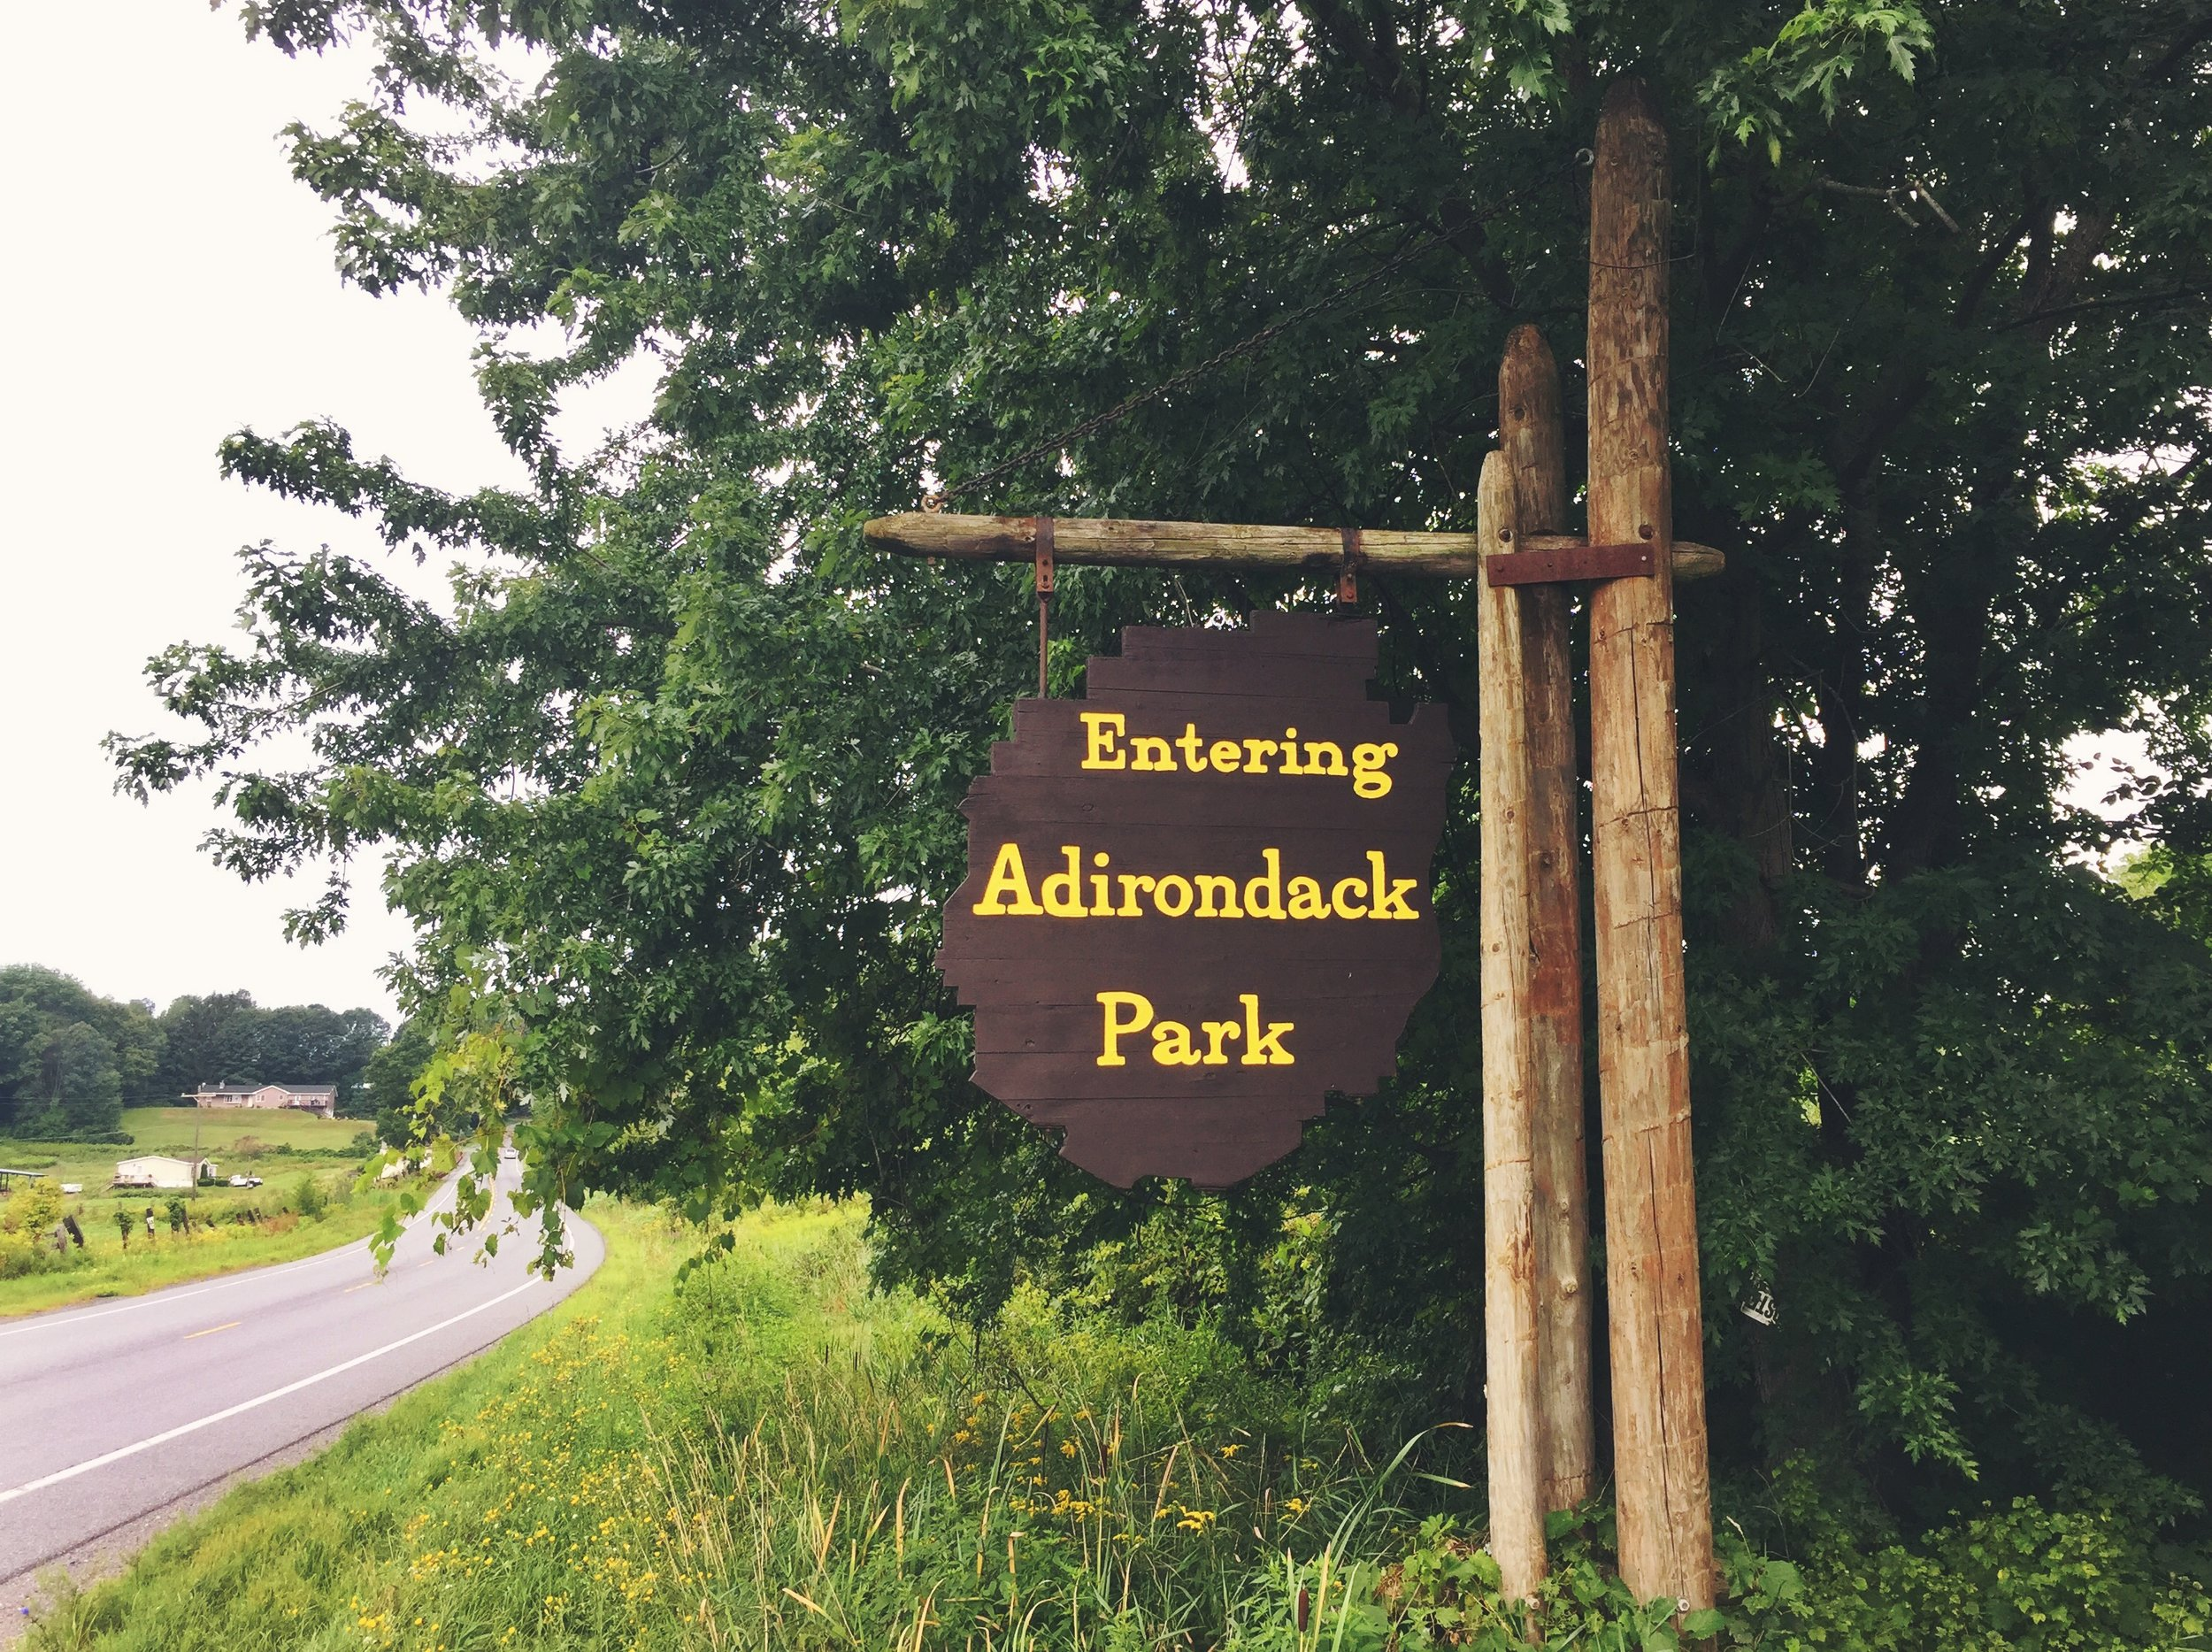 The NFCT begins from its western terminus in New York's 6 million acre Adirondack Park.